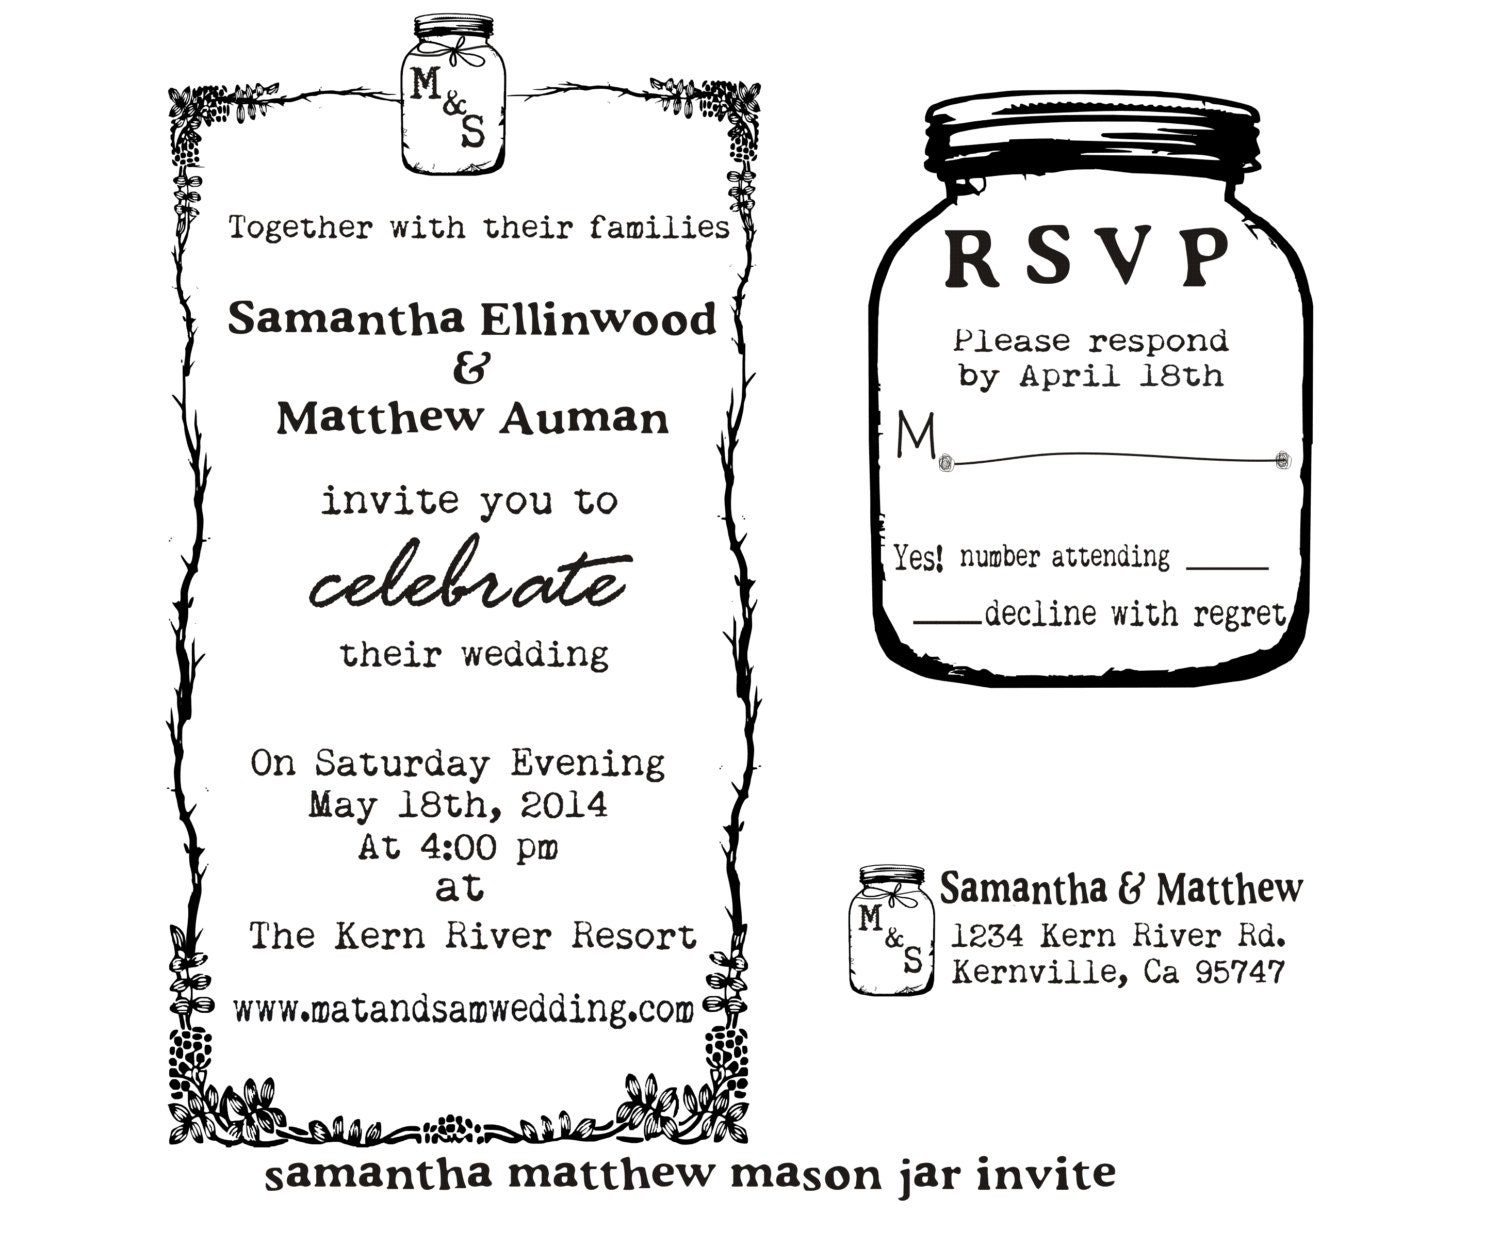 Stamps For Wedding Invitations: Mason Jar Wedding Invitation Rubber Stamp SET With Invitation